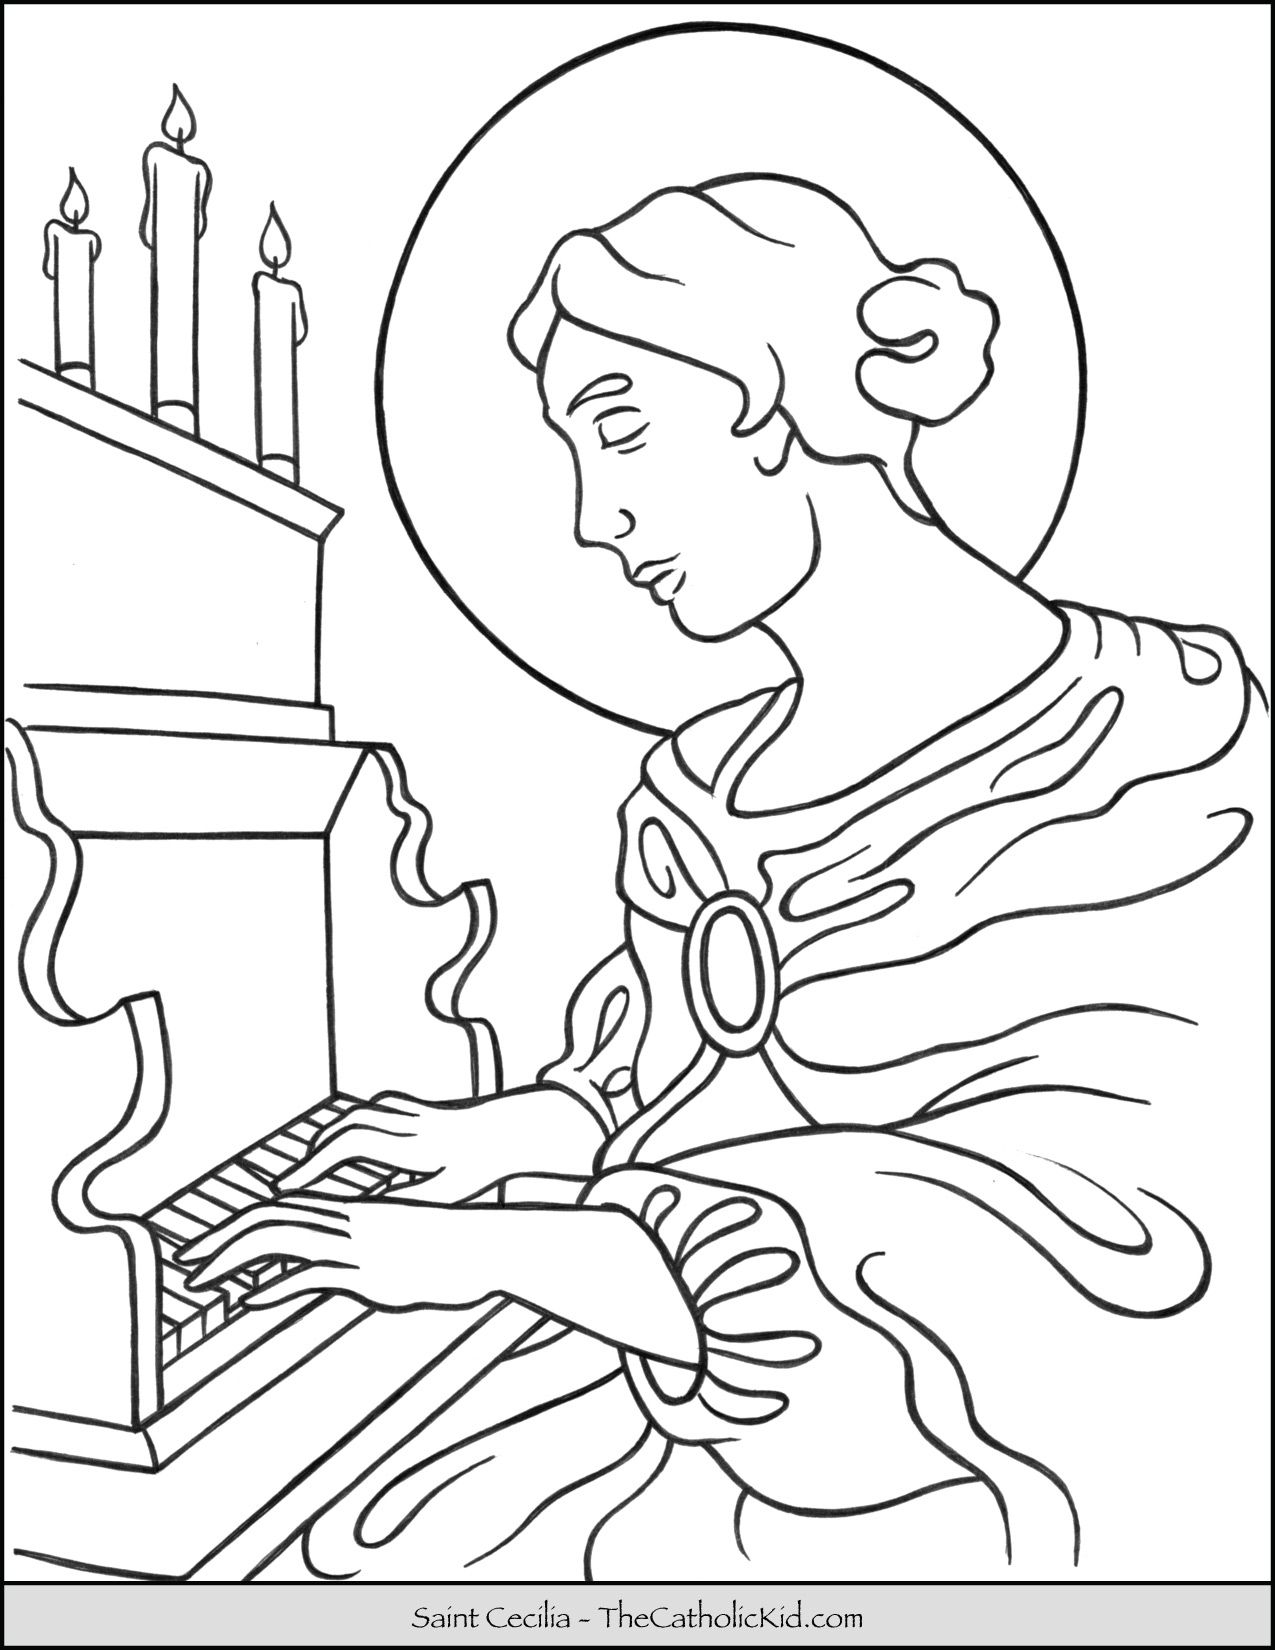 Saint Cecilia Coloring Page Thecatholickid Com Coloring Pages